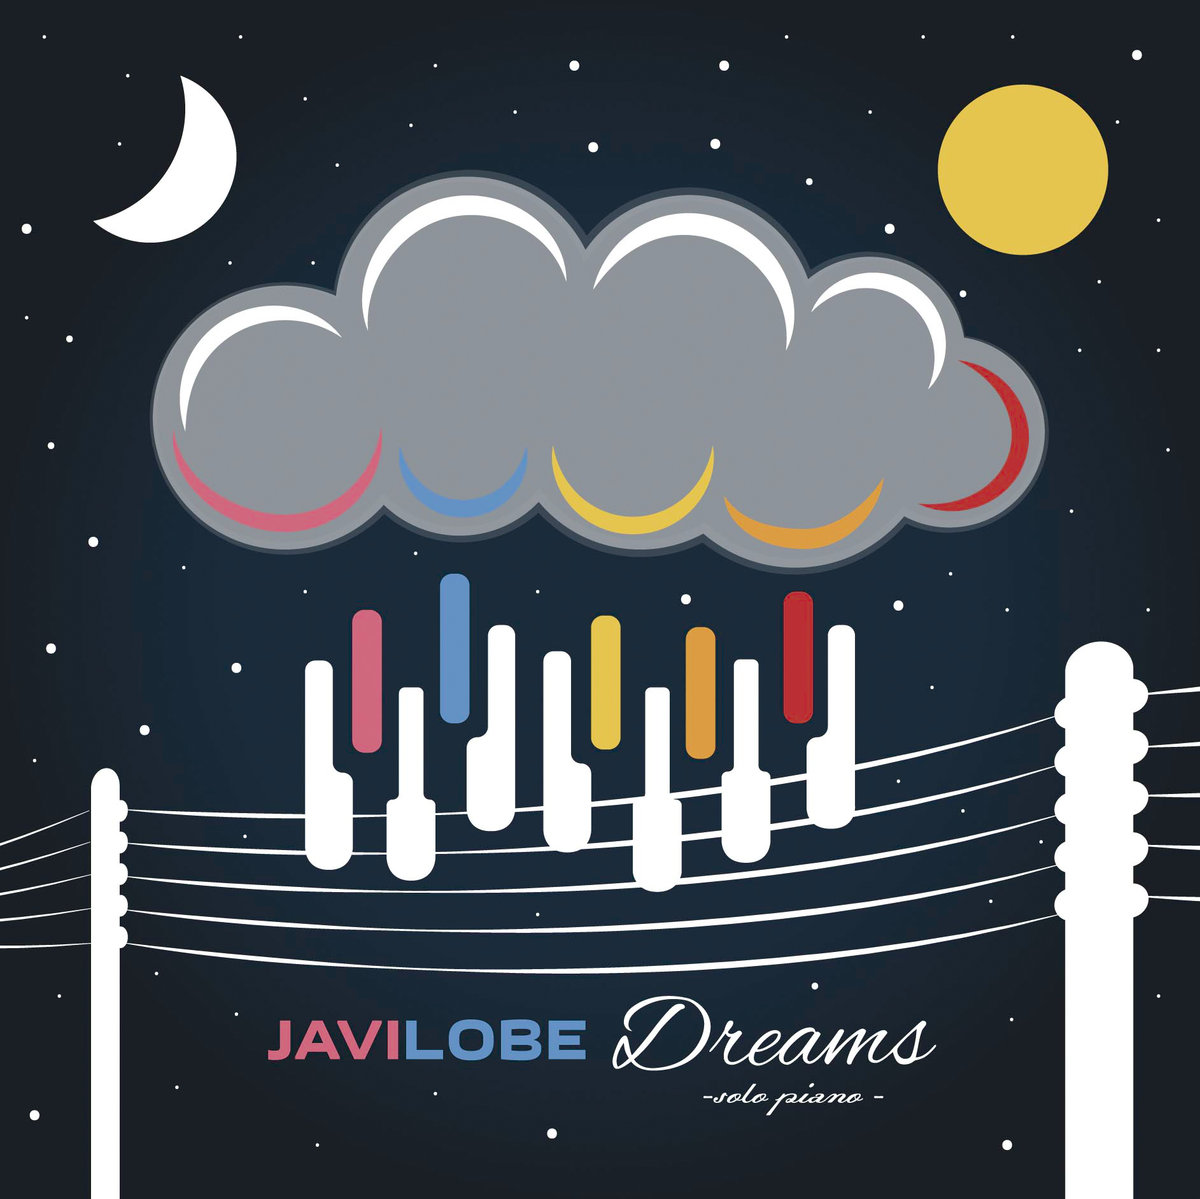 Javi Lobe - Dreams